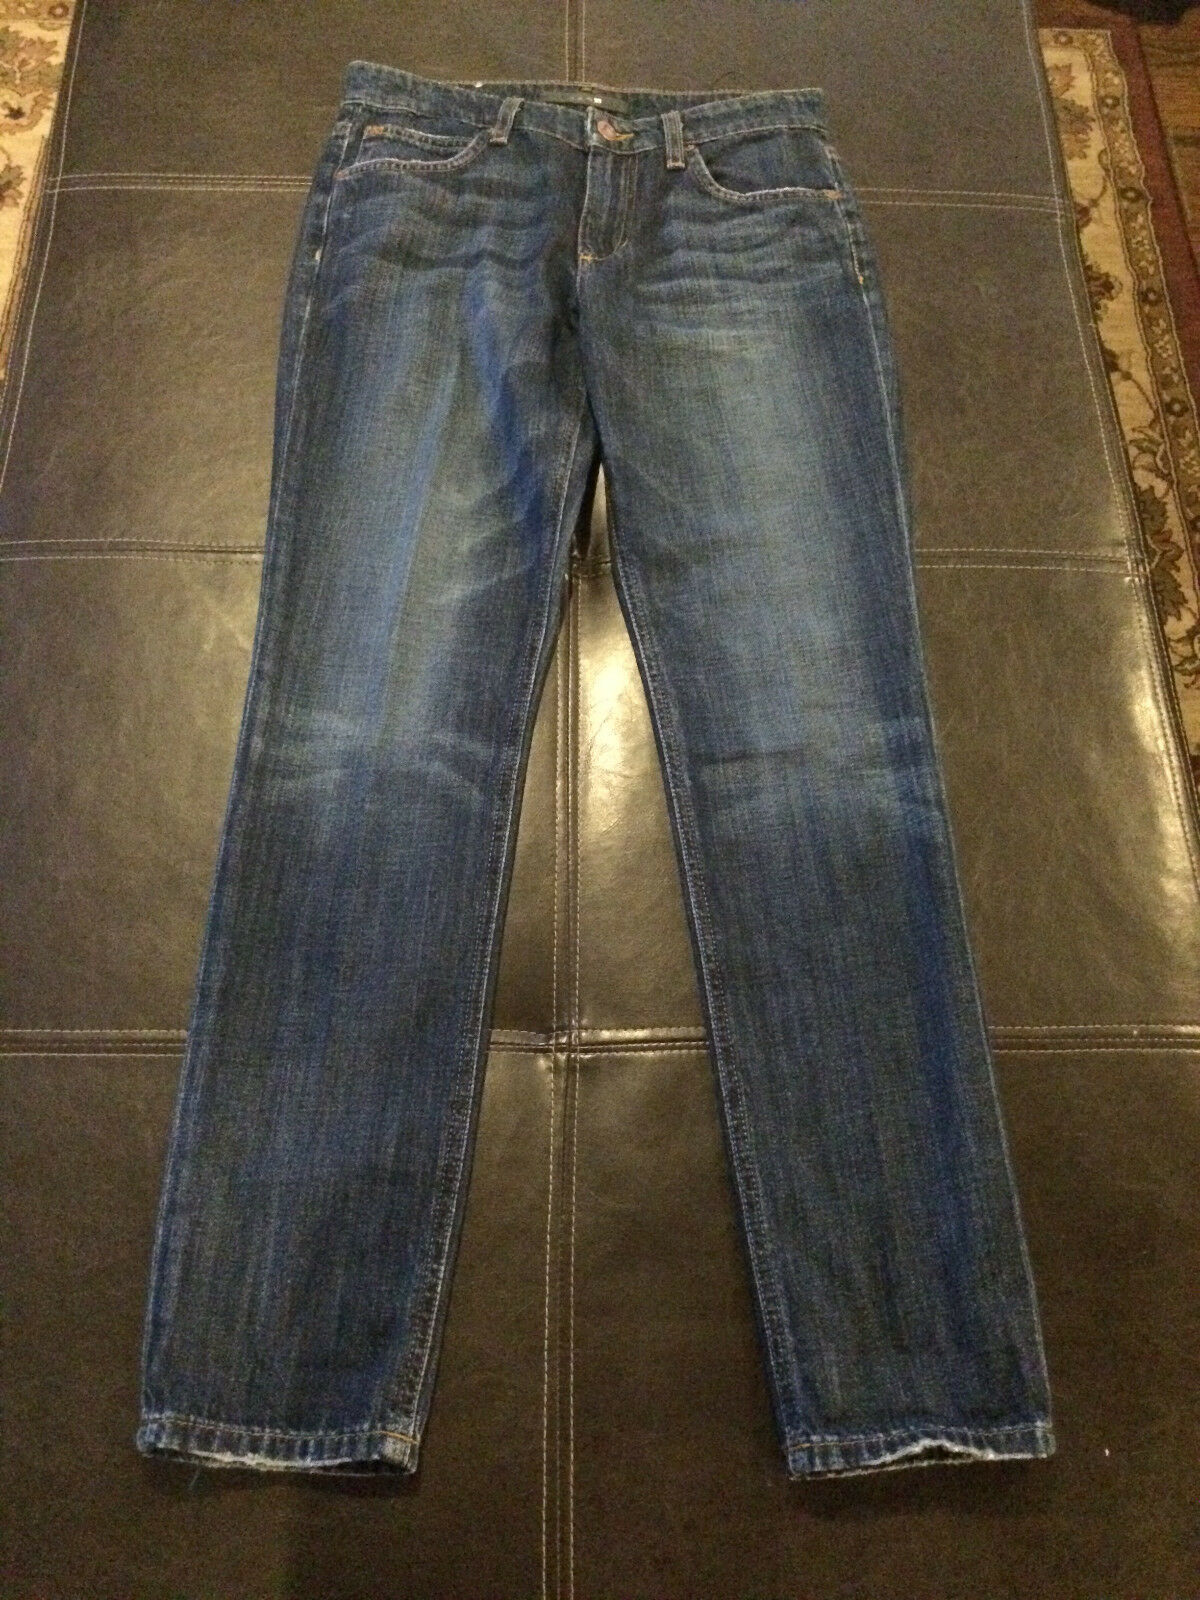 JOE'S JEANS WOMENS EASY HIGHWATER JEANS - SIZE 25 - NEW WITH TAGS - SAVE